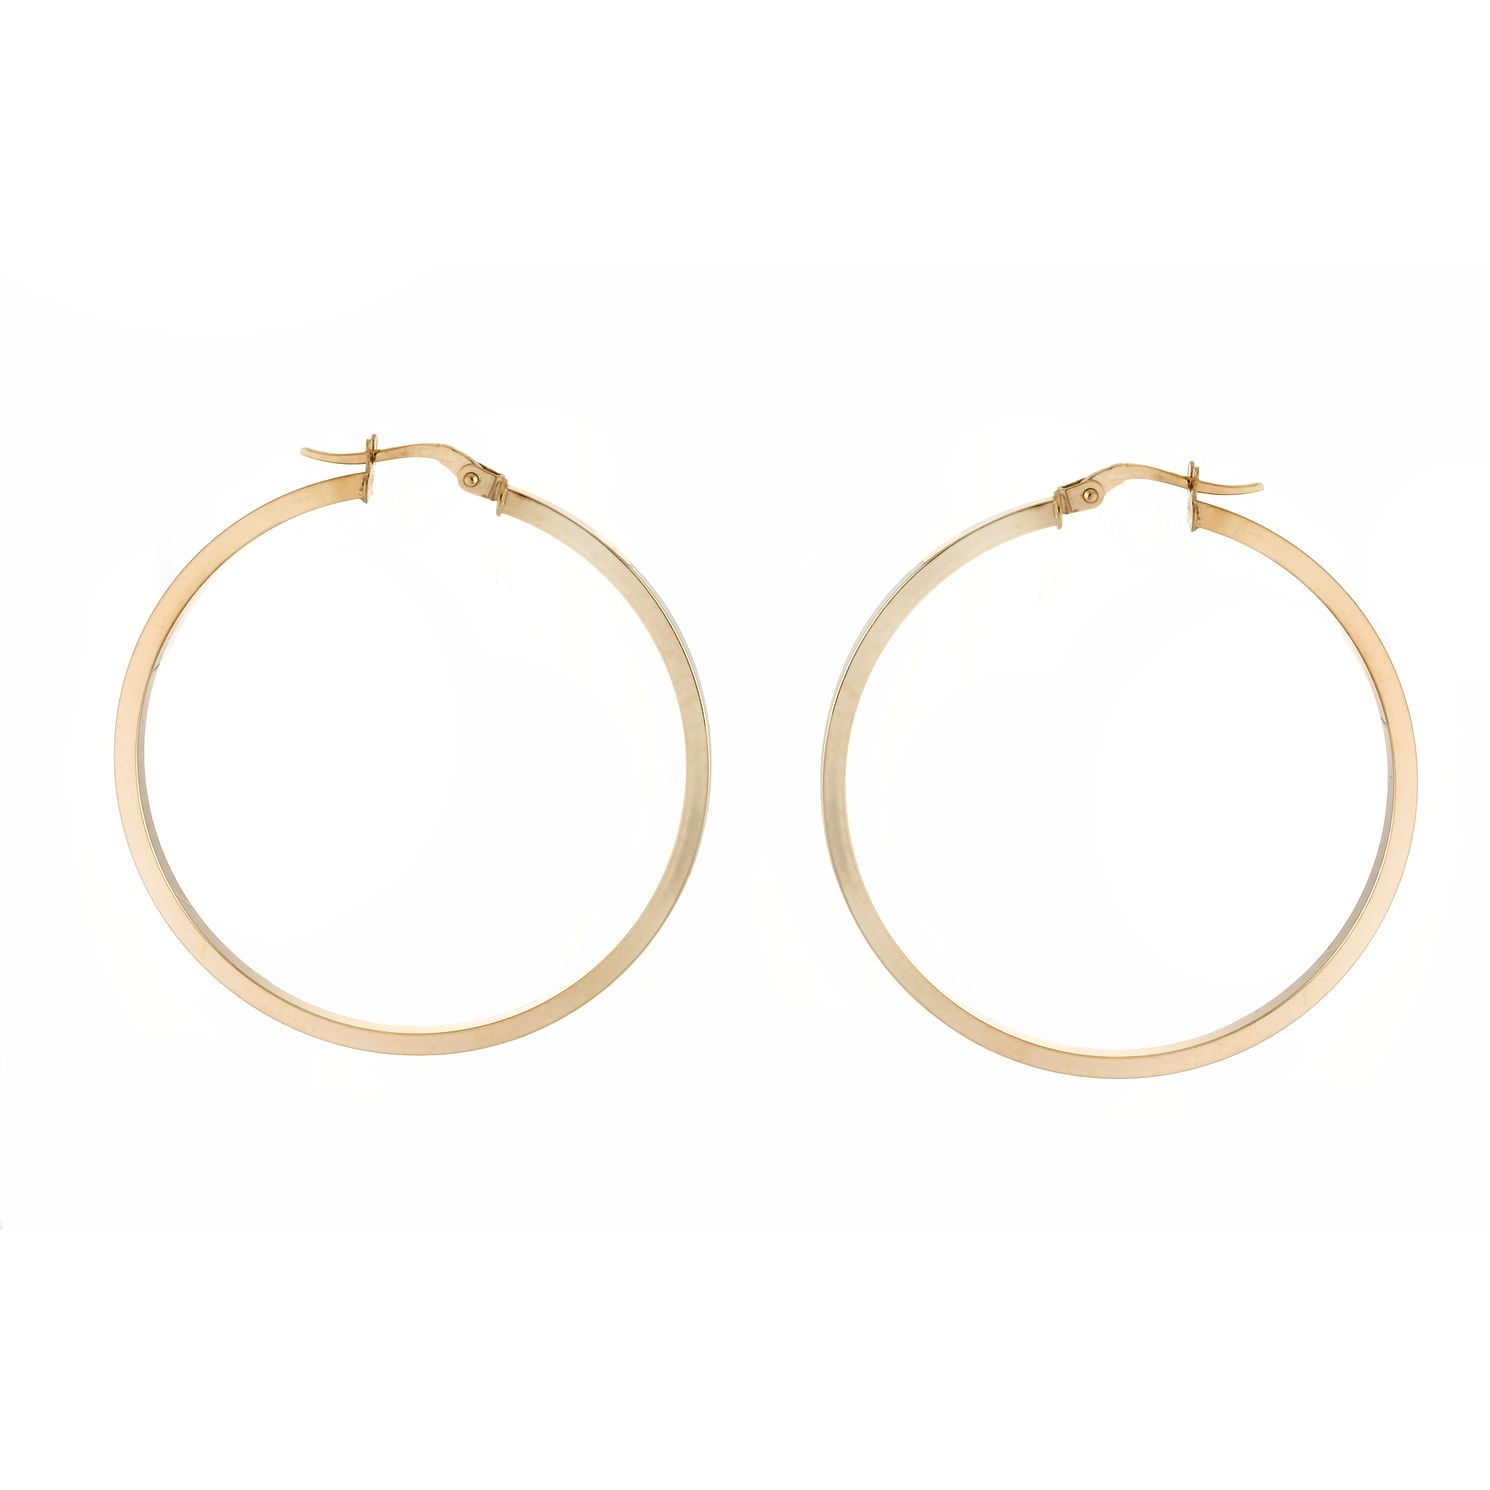 9ct Yellow Gold Square Tube 40mm Hoop Earrings - Product number 4672100